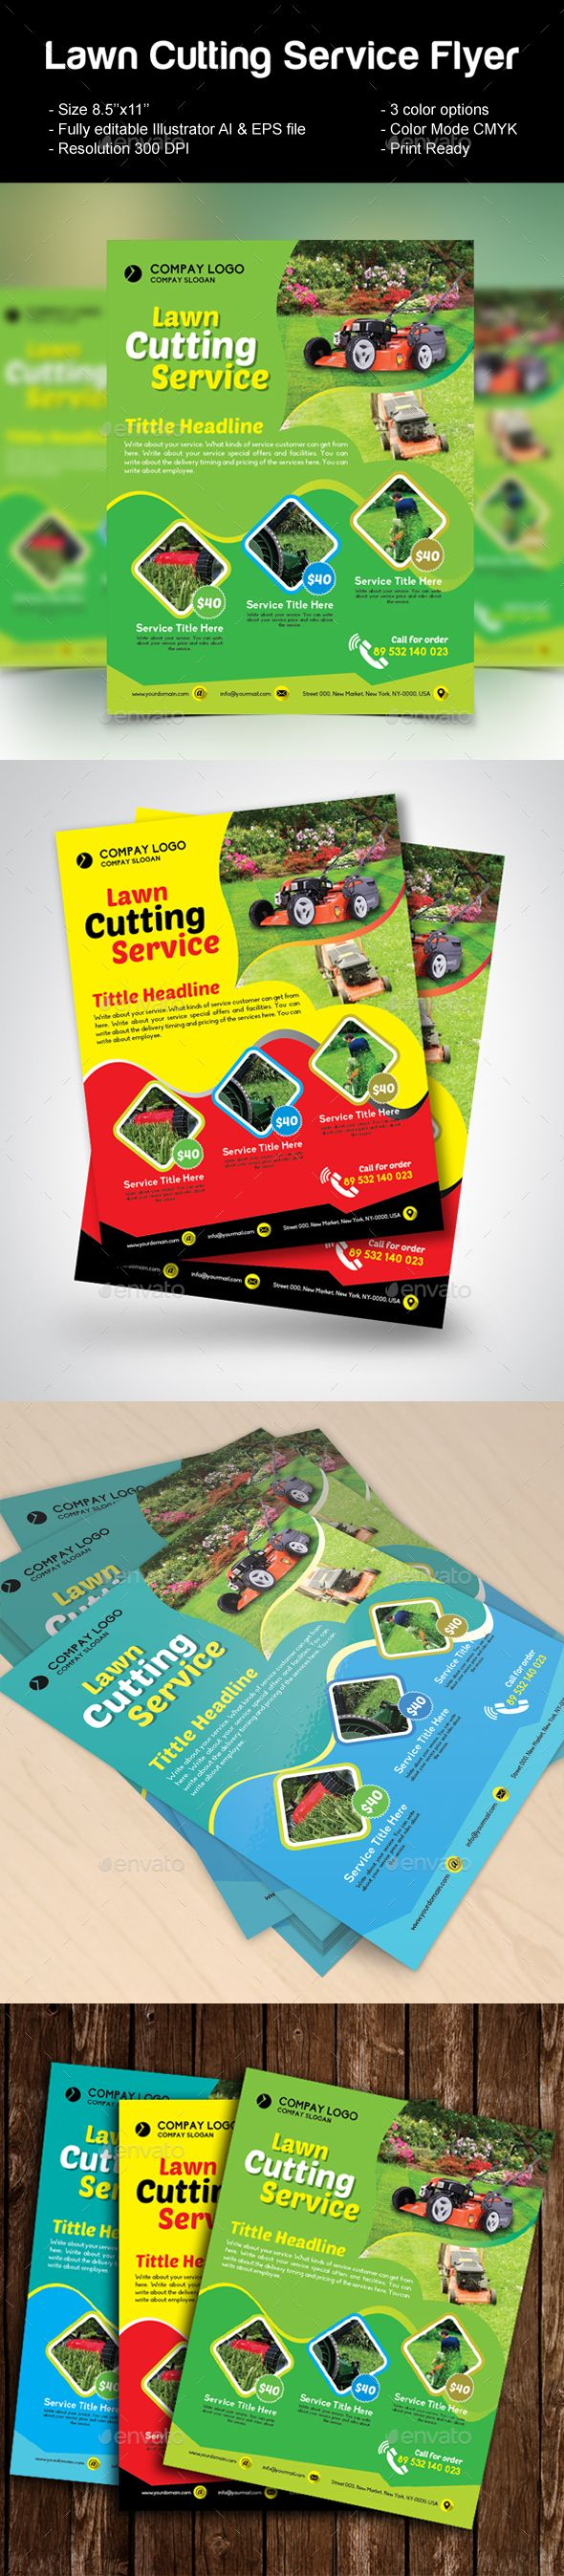 """Lawn Cutting Service Flyer by design_station Lawn Cutting Service Flyer (Editable) Specifications: - Size: 8.5鈥漻11鈥?20- Bleed: .125\""""- Two color variations (Cyan, Green & Yell"""